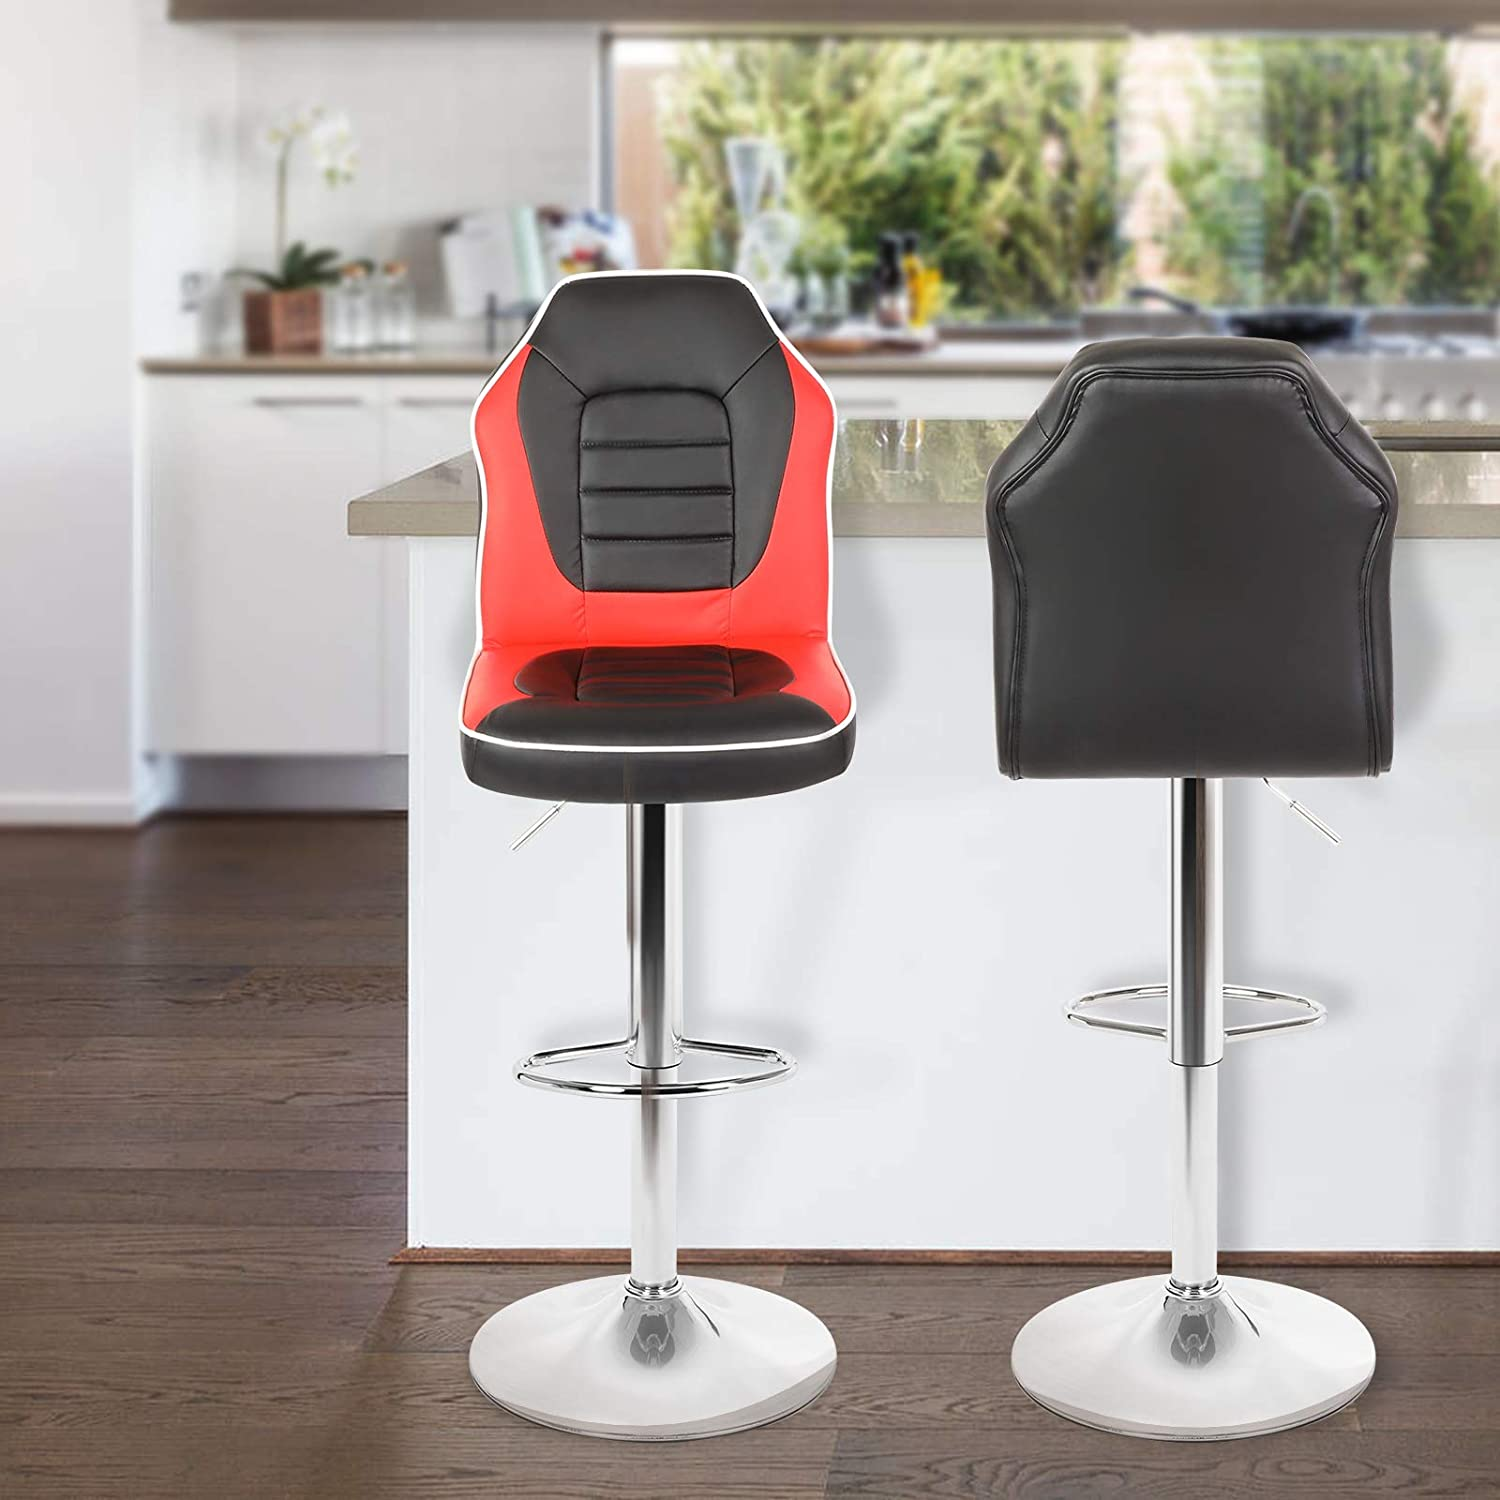 Extra Comfort Modern Racing Seat Bar Stools Chair Adjustable Swivel Mixed  Color Set of 9 Black/Red